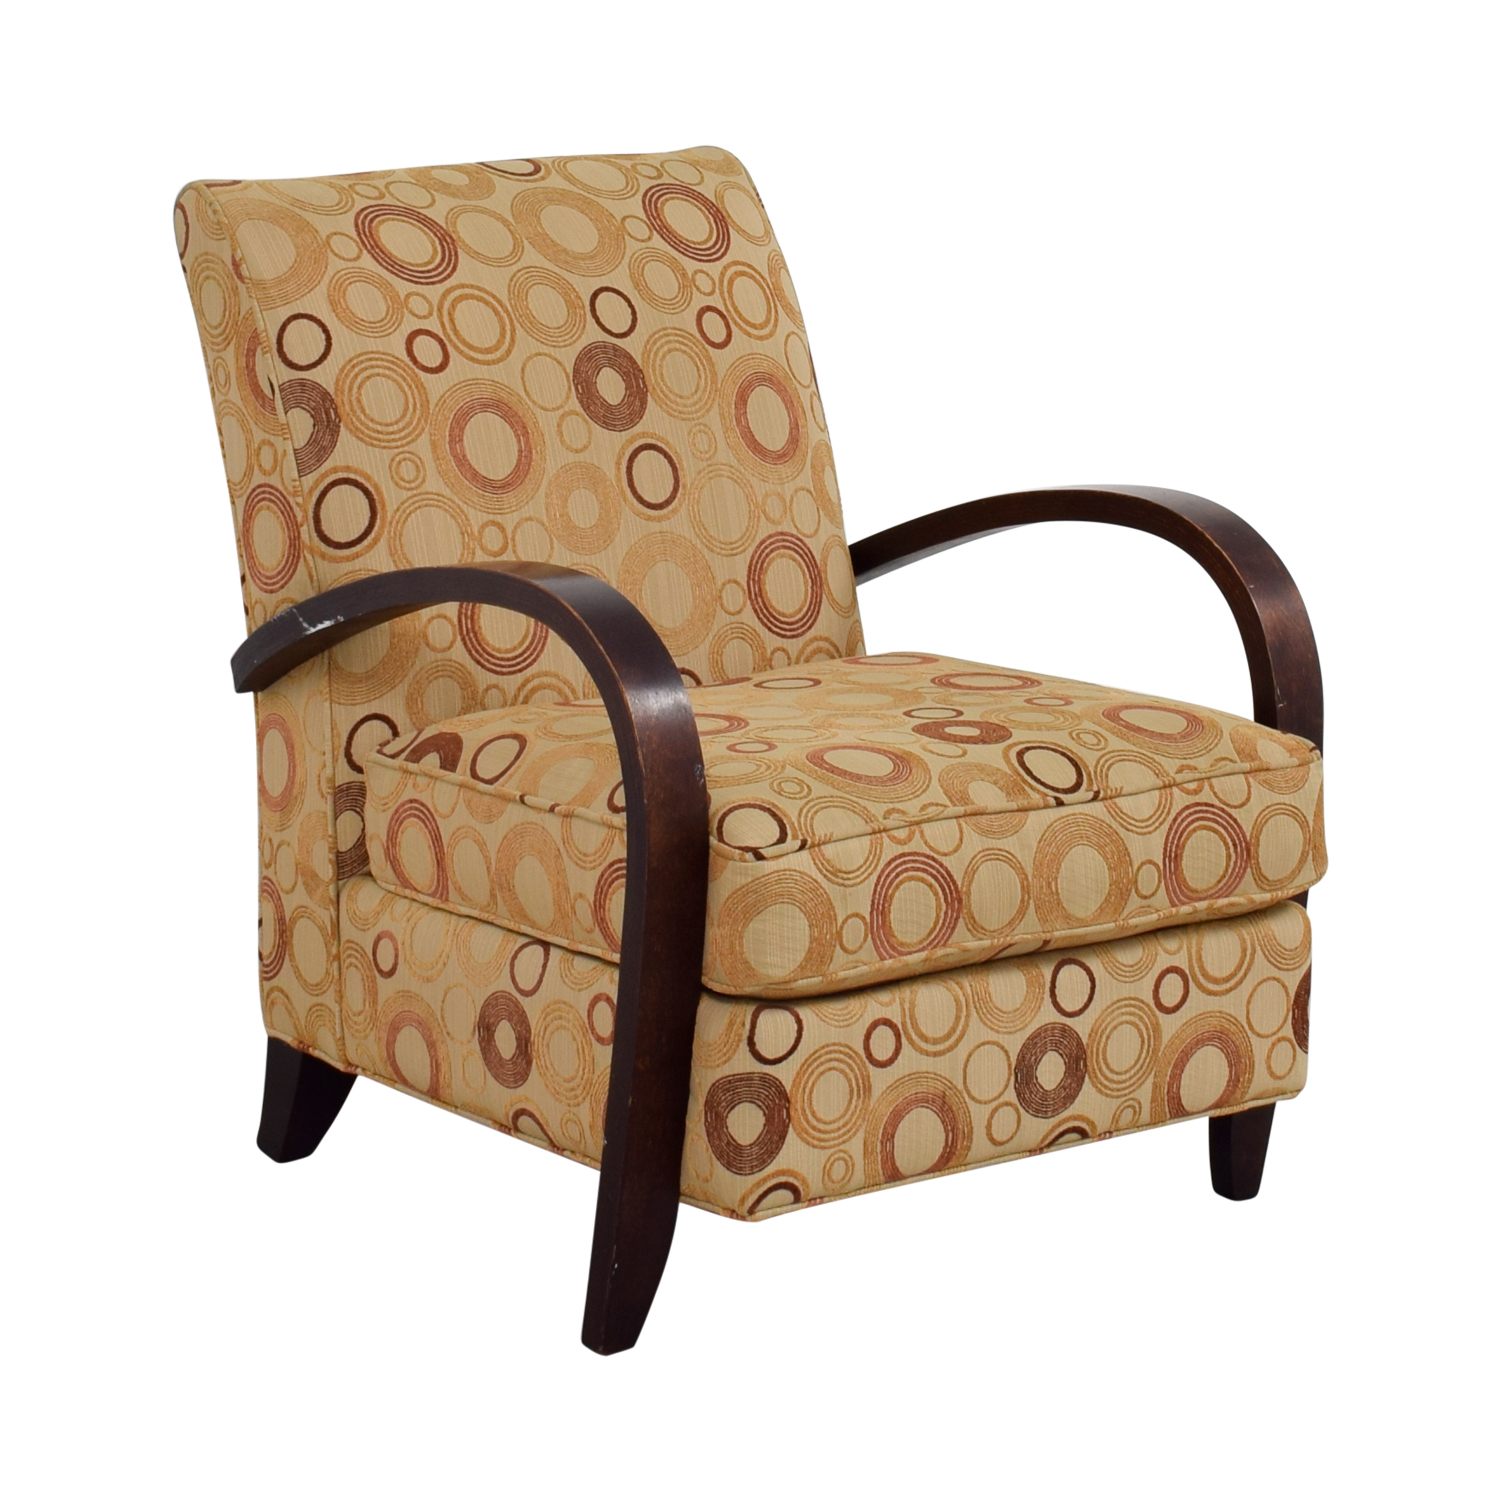 buy pier 1 imports circle accent chair pier 1 imports accent chairs     75  off   pier 1 imports pier 1 imports circle accent chair   chairs  rh   furnishare